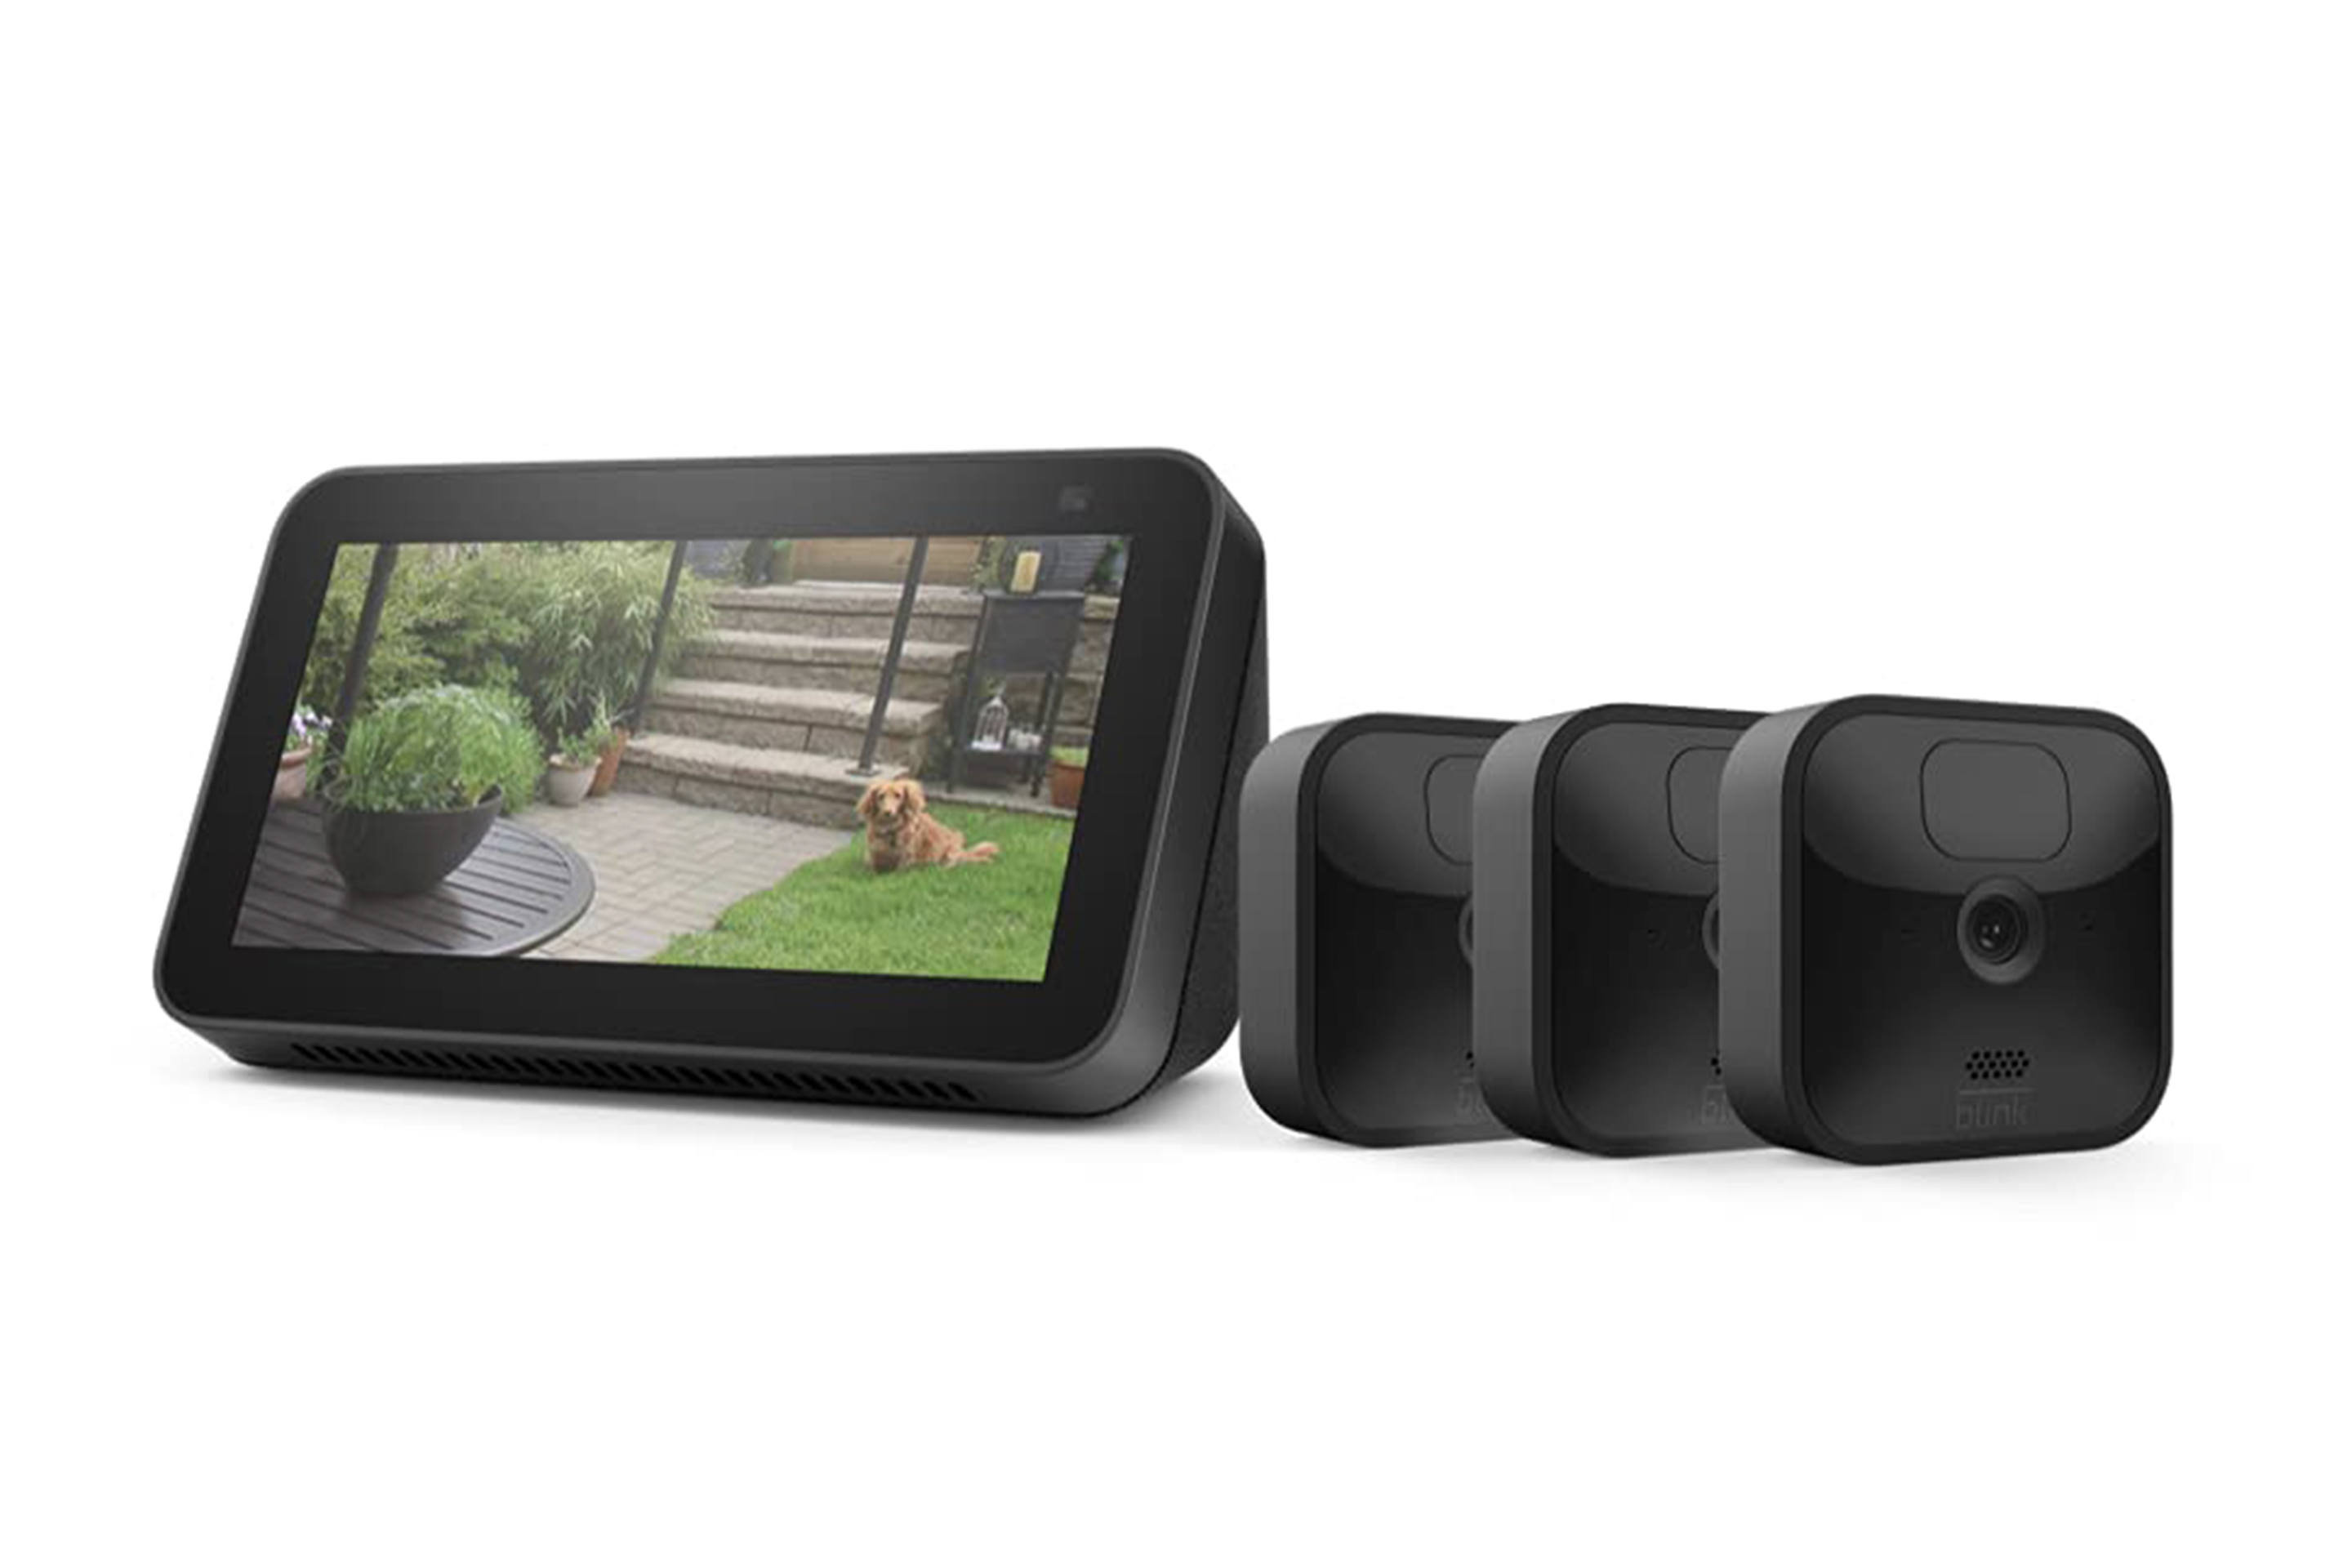 Blink Outdoor 3 Cam Kit bundle with Echo Show